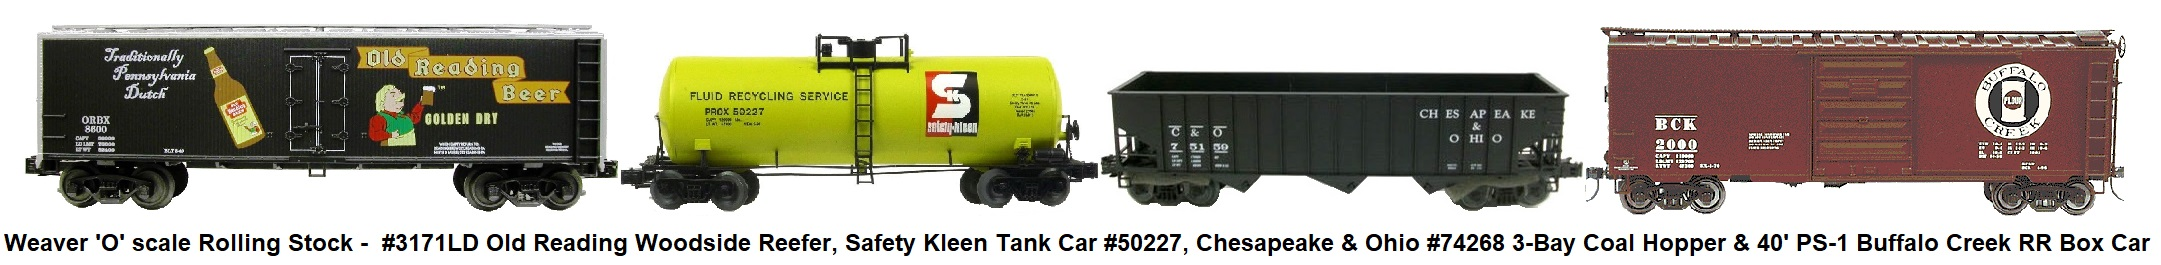 Weaver 'O' scale freight cars - includes #3171LD Old Reading Woodside Reefer, Safety Kleen Tank Car #50227, Chesapeake & Ohio #74268 3-Bay Coal Hopper, and 40' PS-1 Buffalo Creek RR Box Car